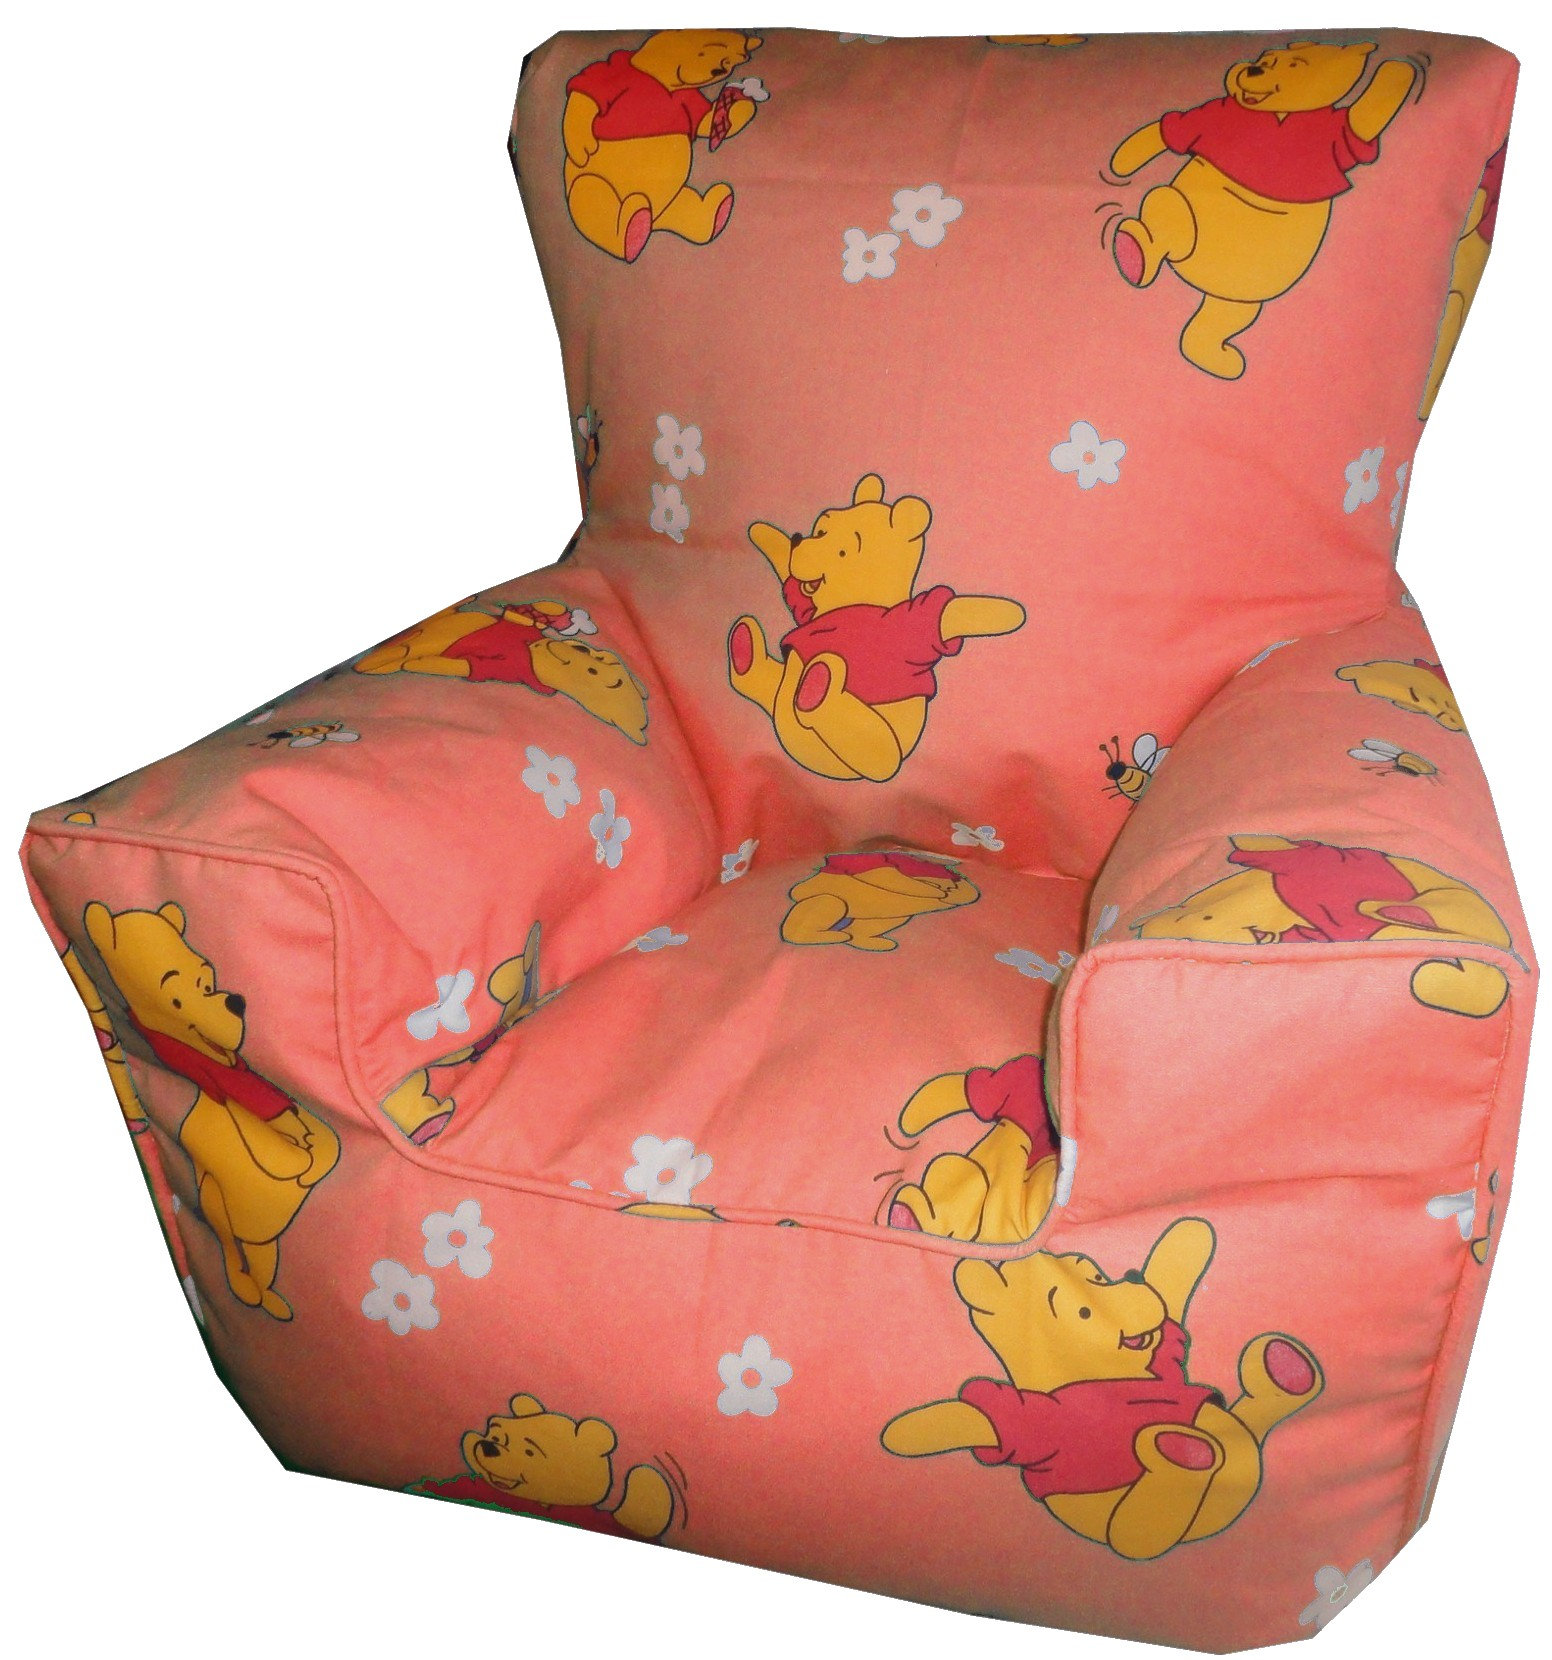 Outstanding Winnie The Pooh Bean Bag Chair Ncnpc Chair Design For Home Ncnpcorg